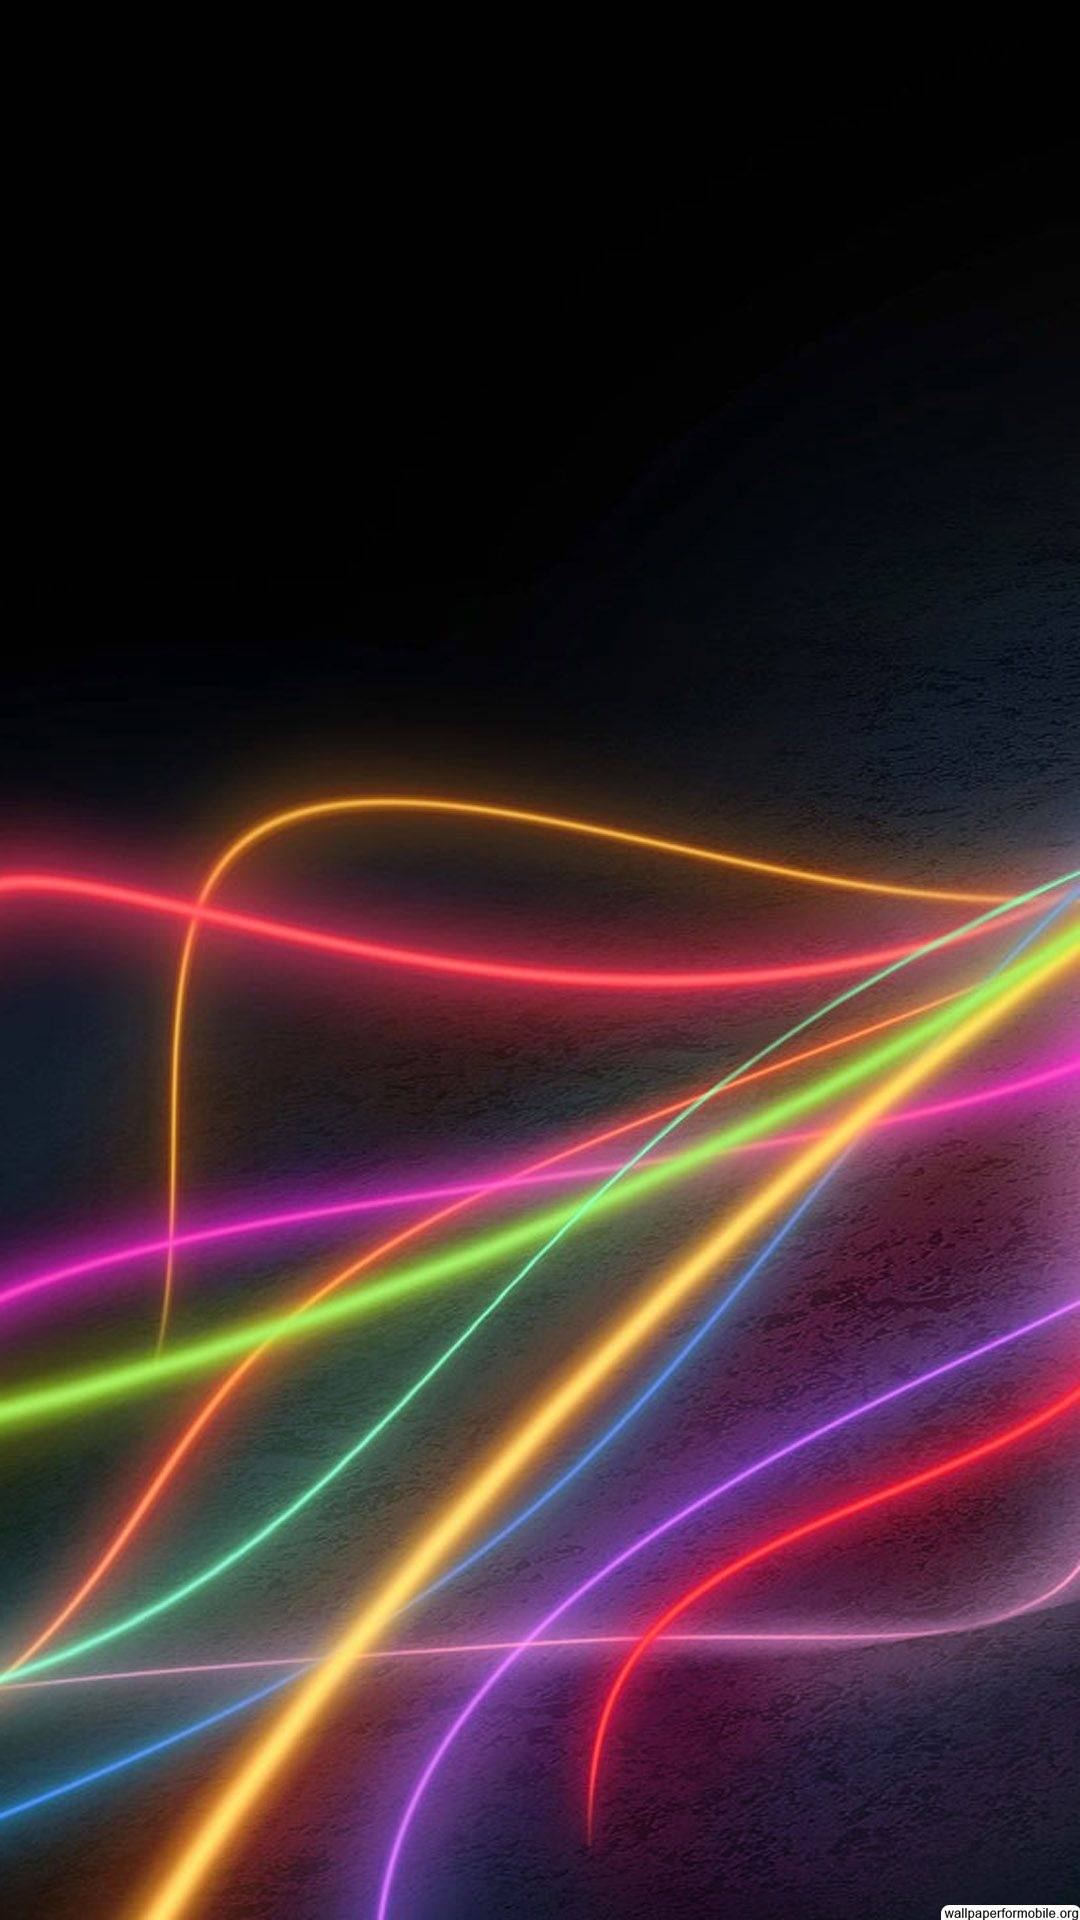 Galaxy Nexus Live Wallpaper